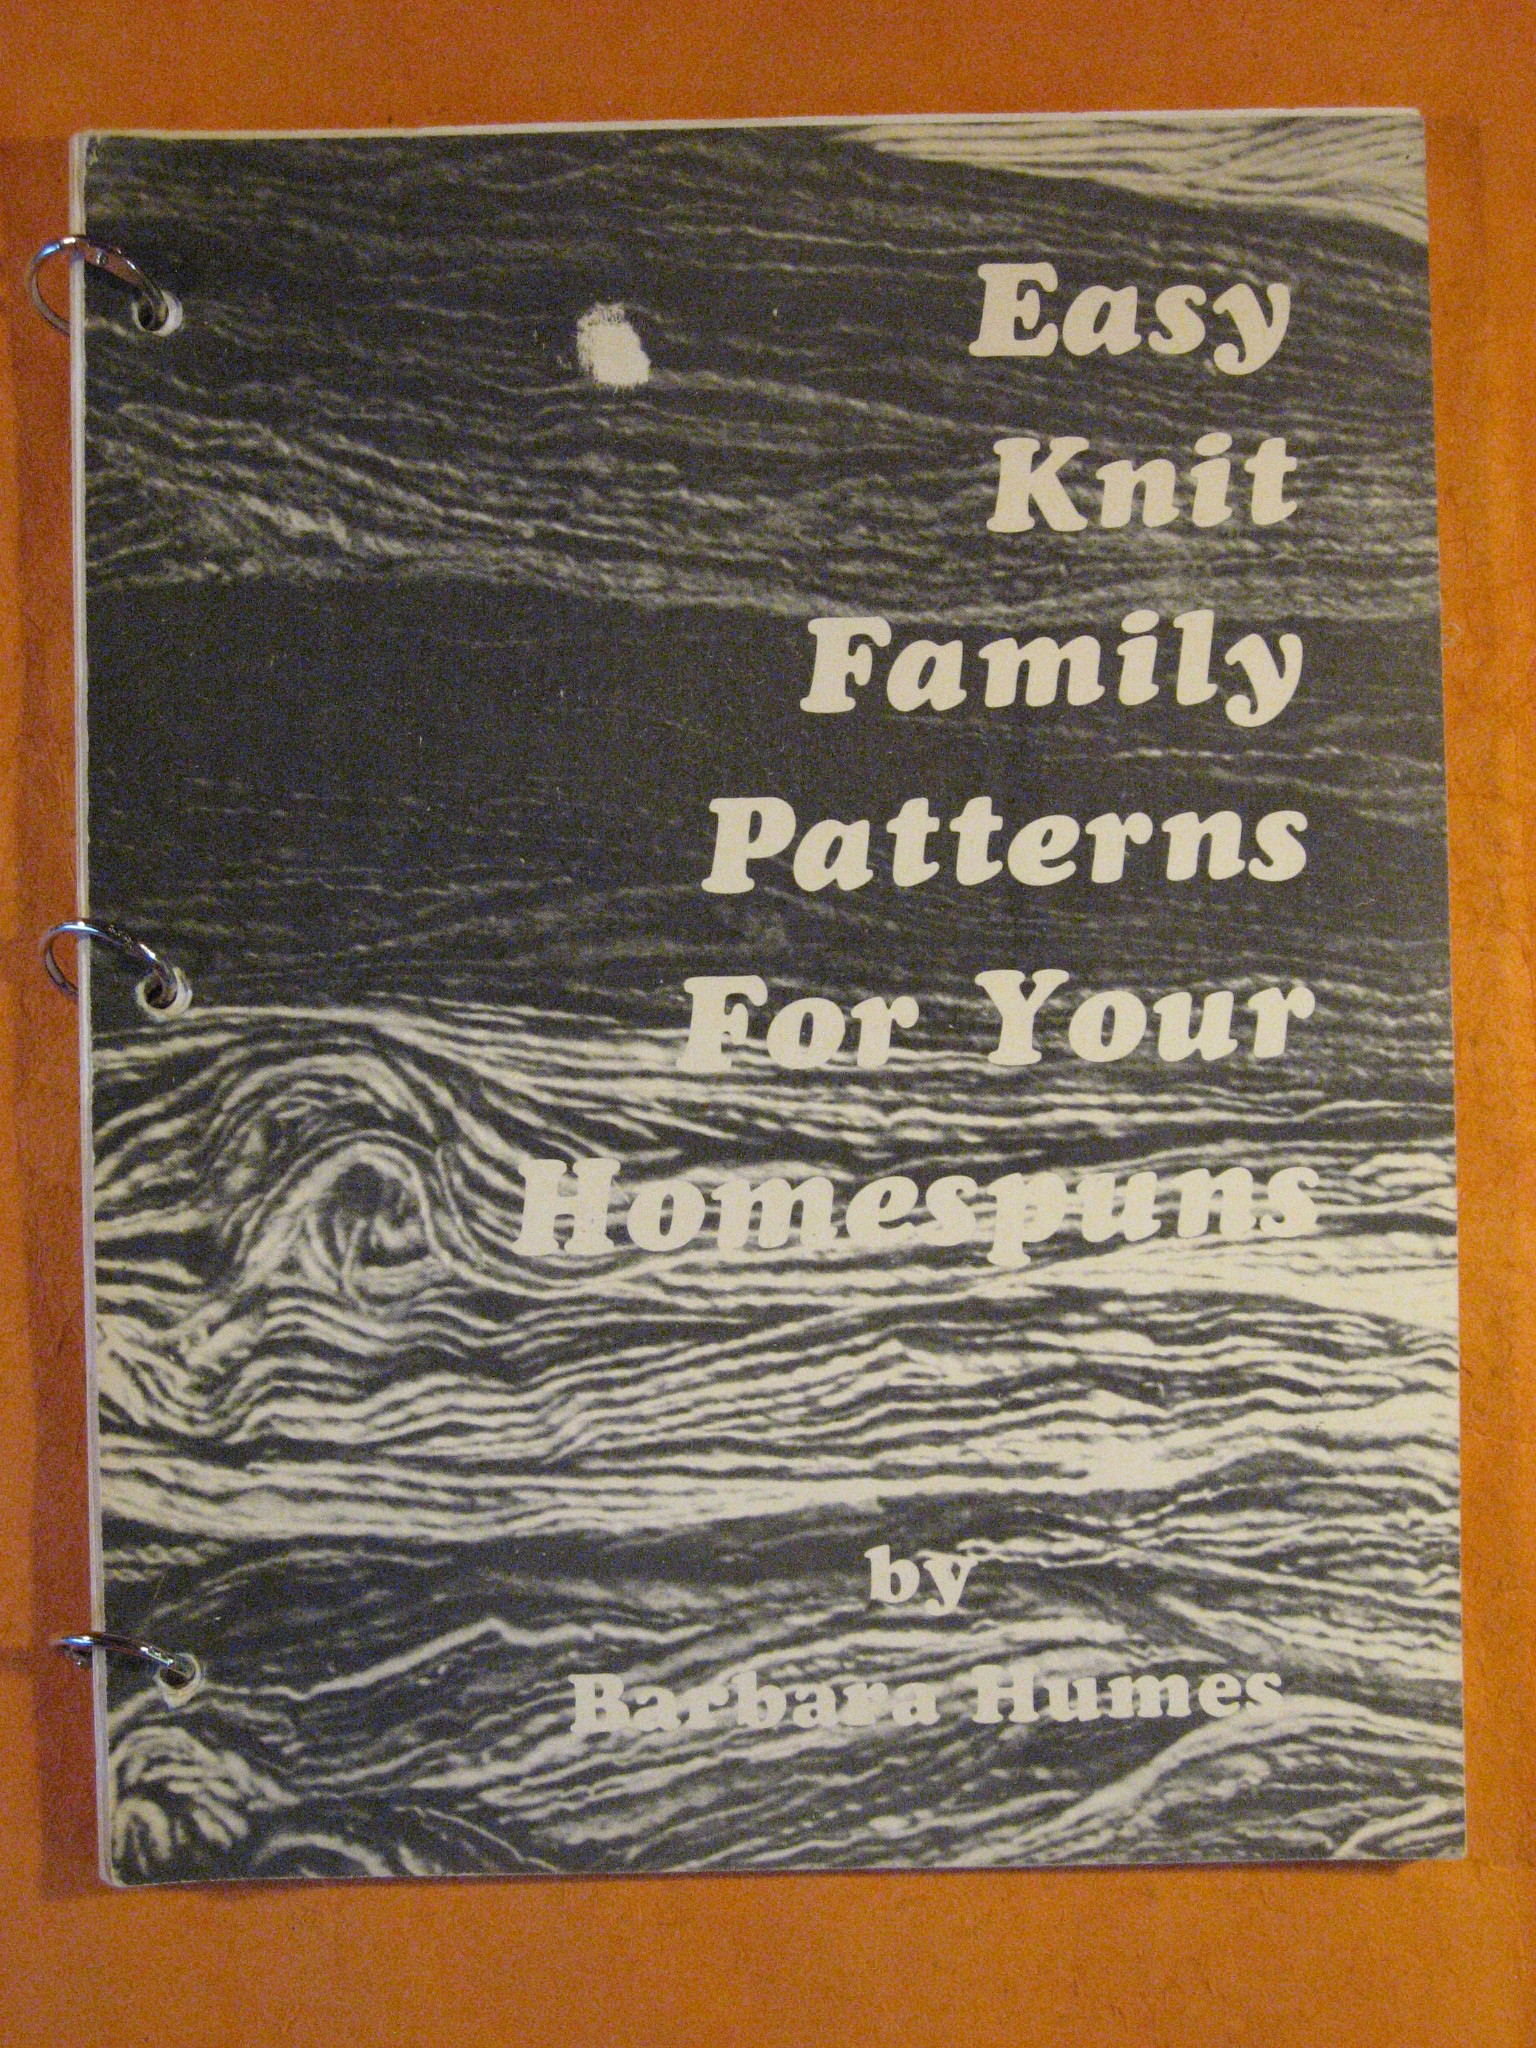 Easy Knit Family Patterns for Your Homespuns, Humes, Barbara